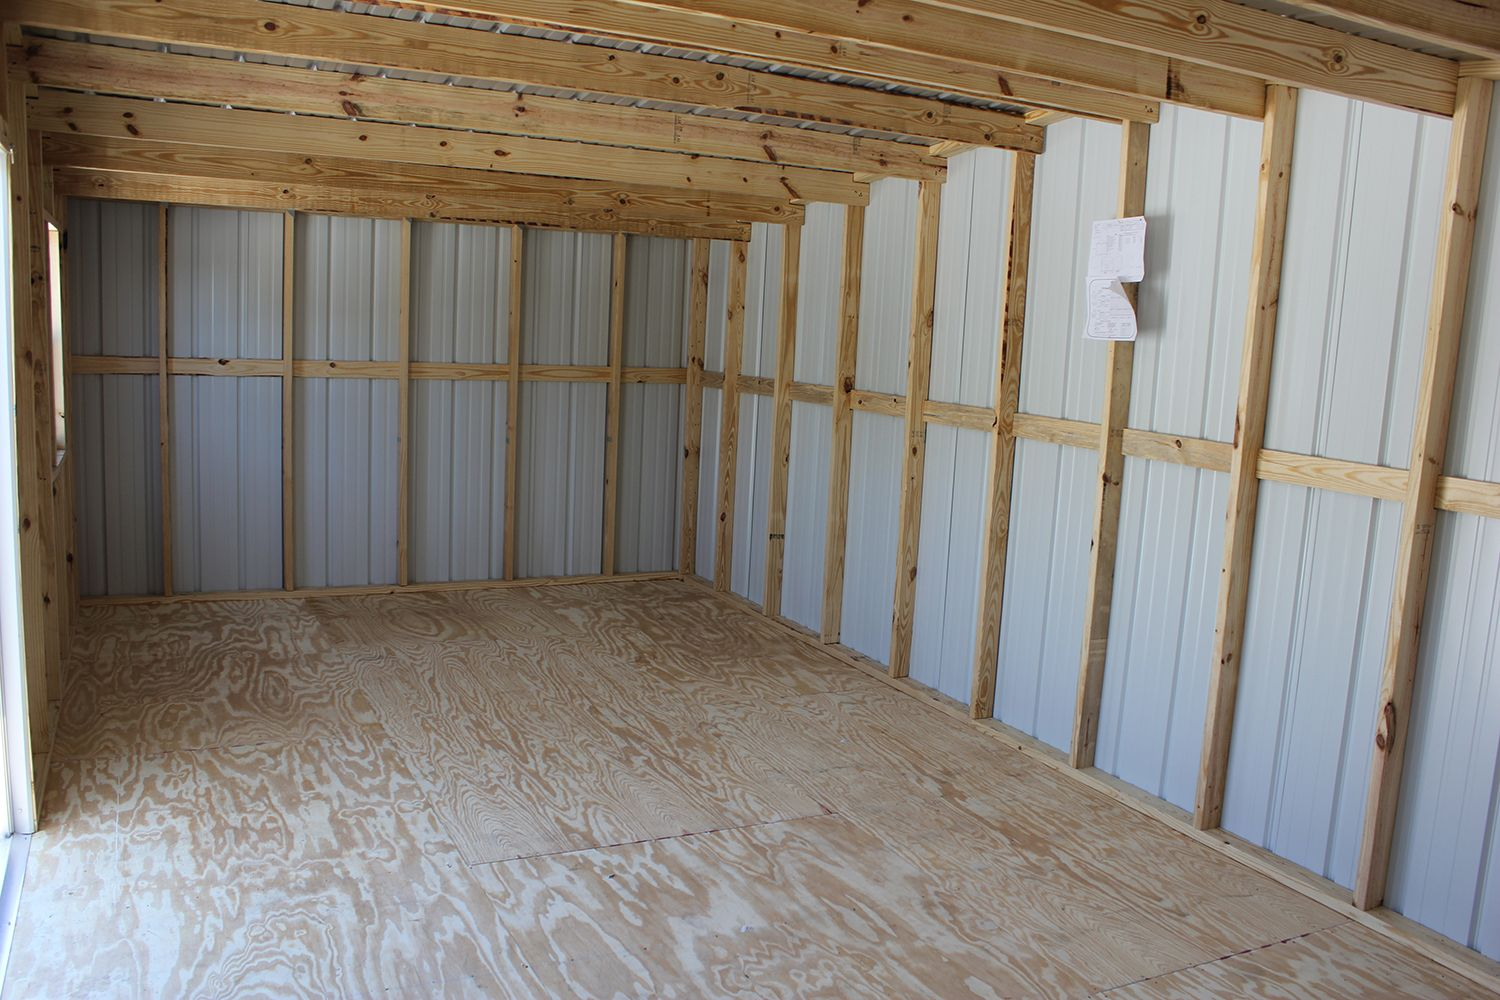 Shed Plans 16x20 The Next Step In Building Your Shed Is Setting On A Plan Uses For 16x20 Shed Pl Building A Container Home Container House Container Homes Cost